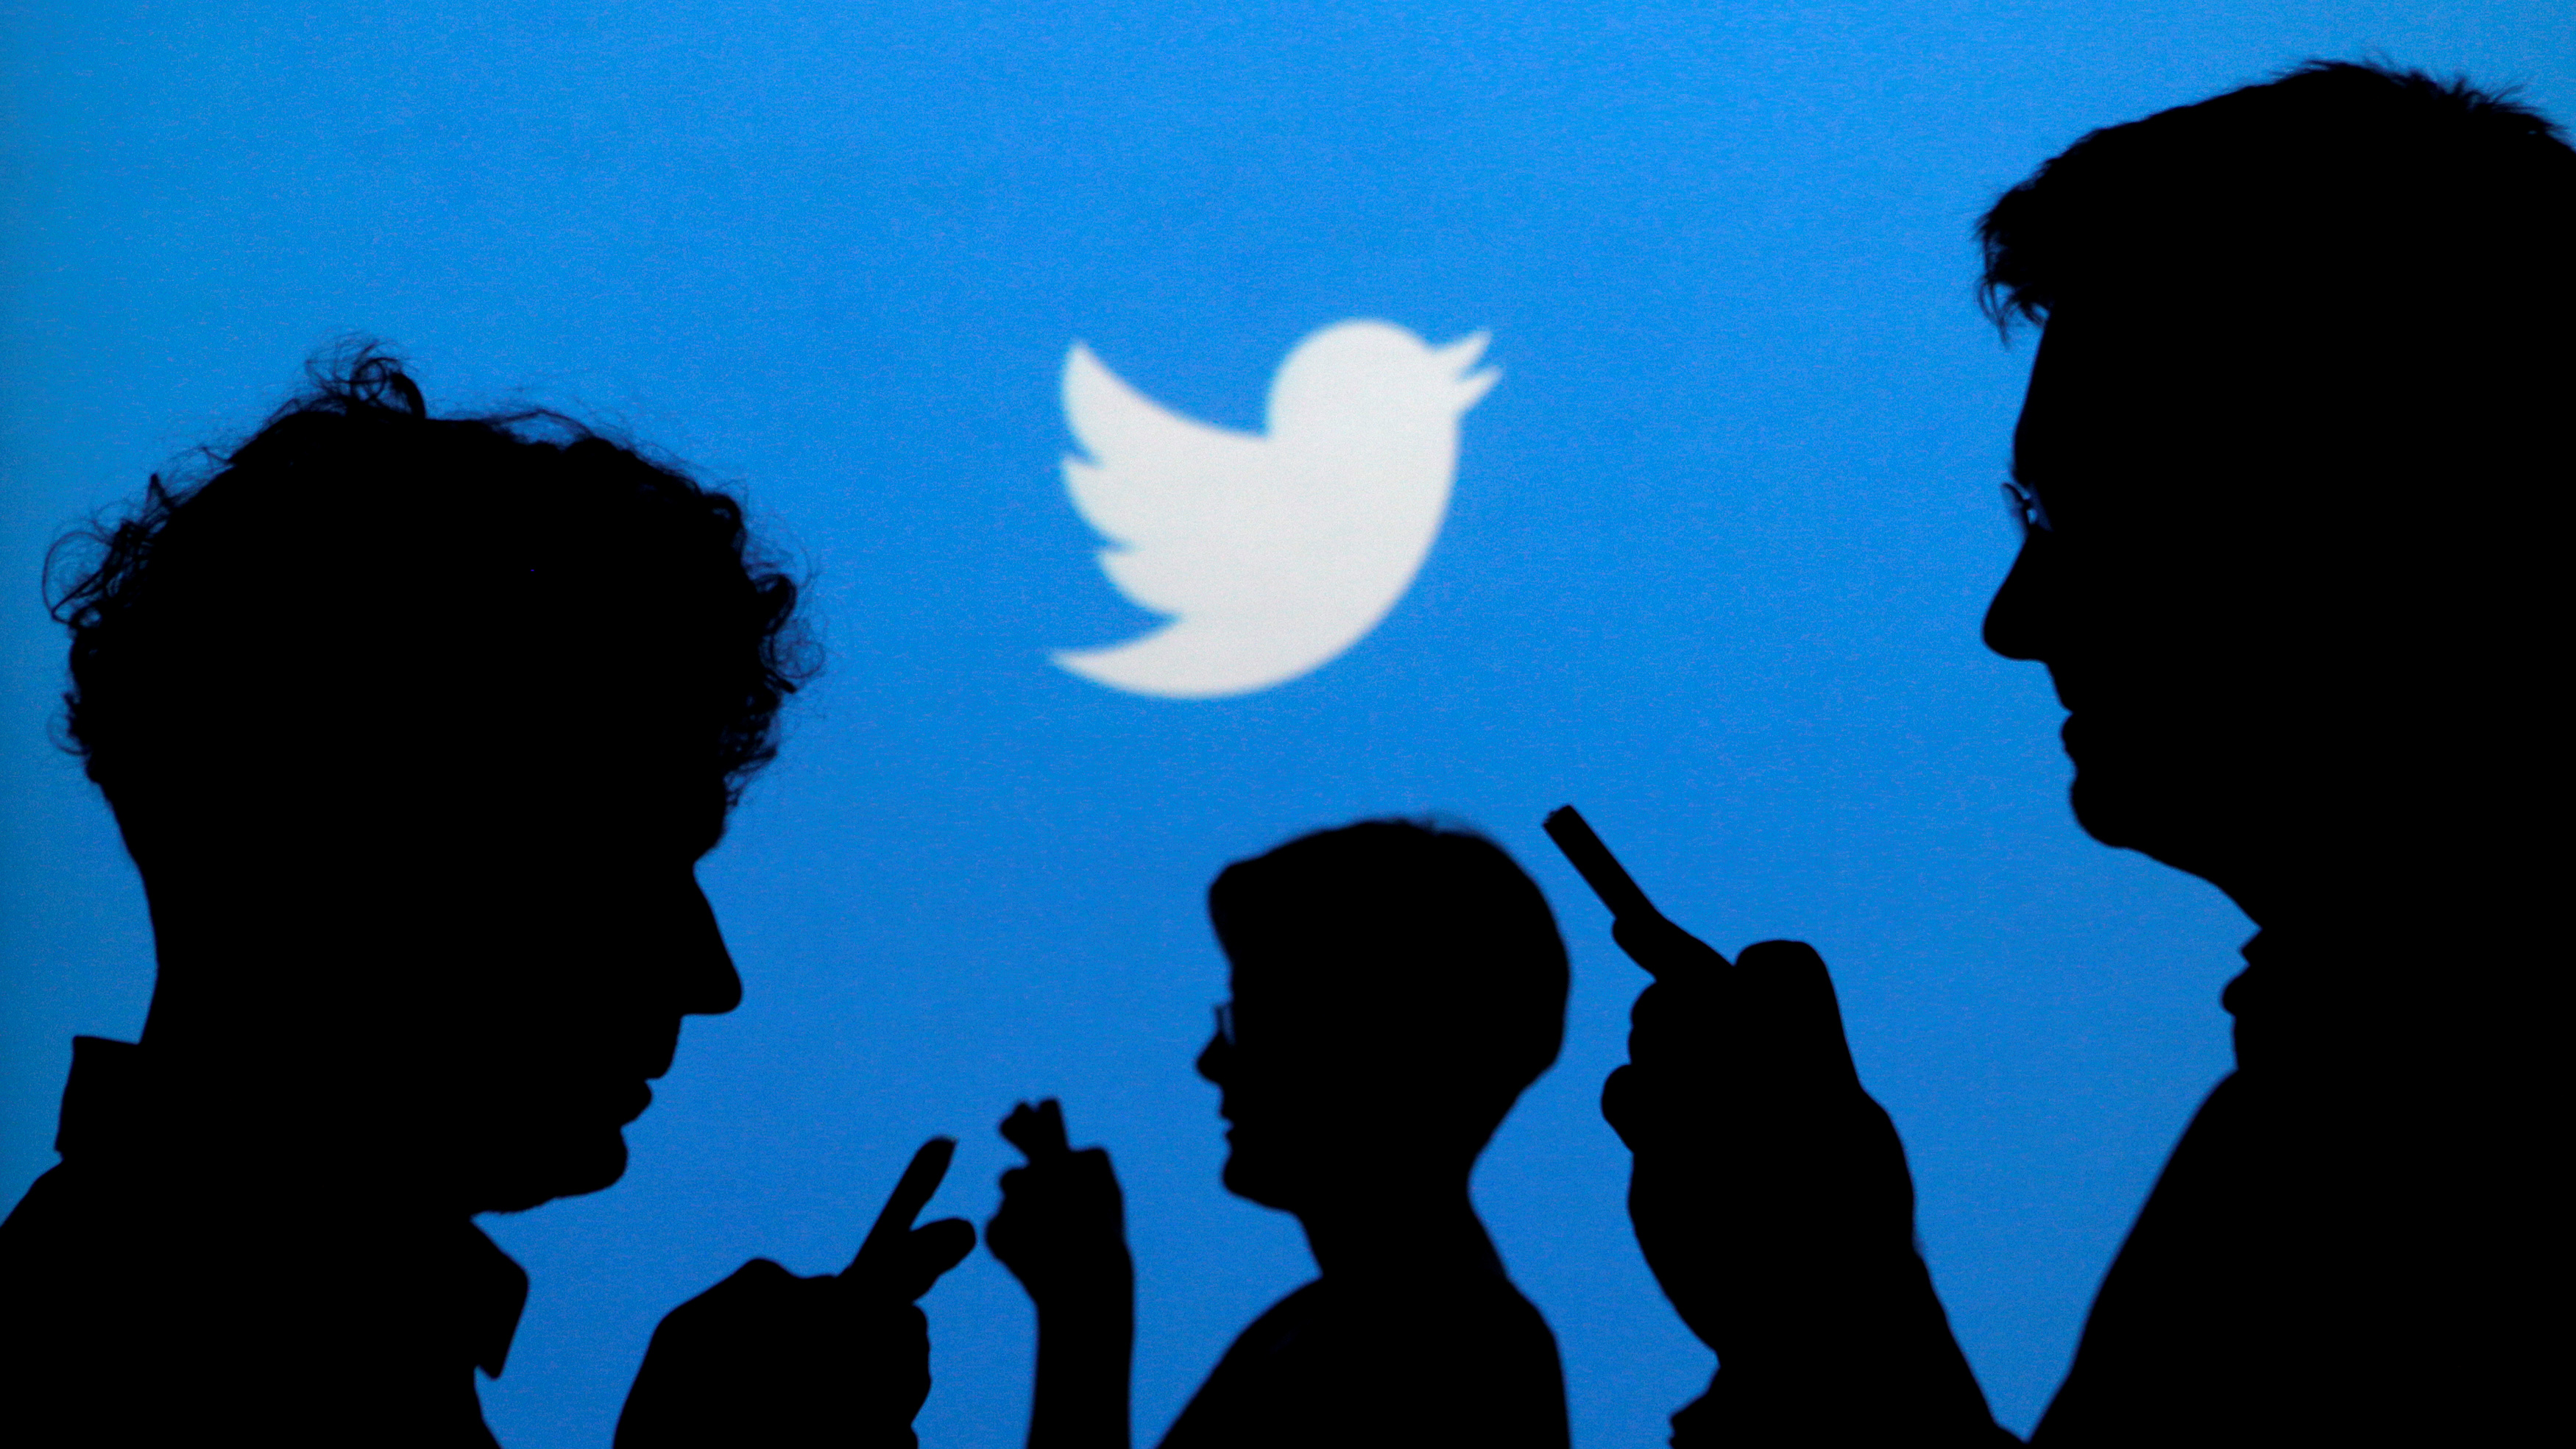 FILE PHOTO: People holding mobile phones are silhouetted against a backdrop projected with the Twitter logo in this illustration picture taken September 27, 2013. REUTERS/Kacper Pempel/Illustration/File Photo - RTX2Q1TA